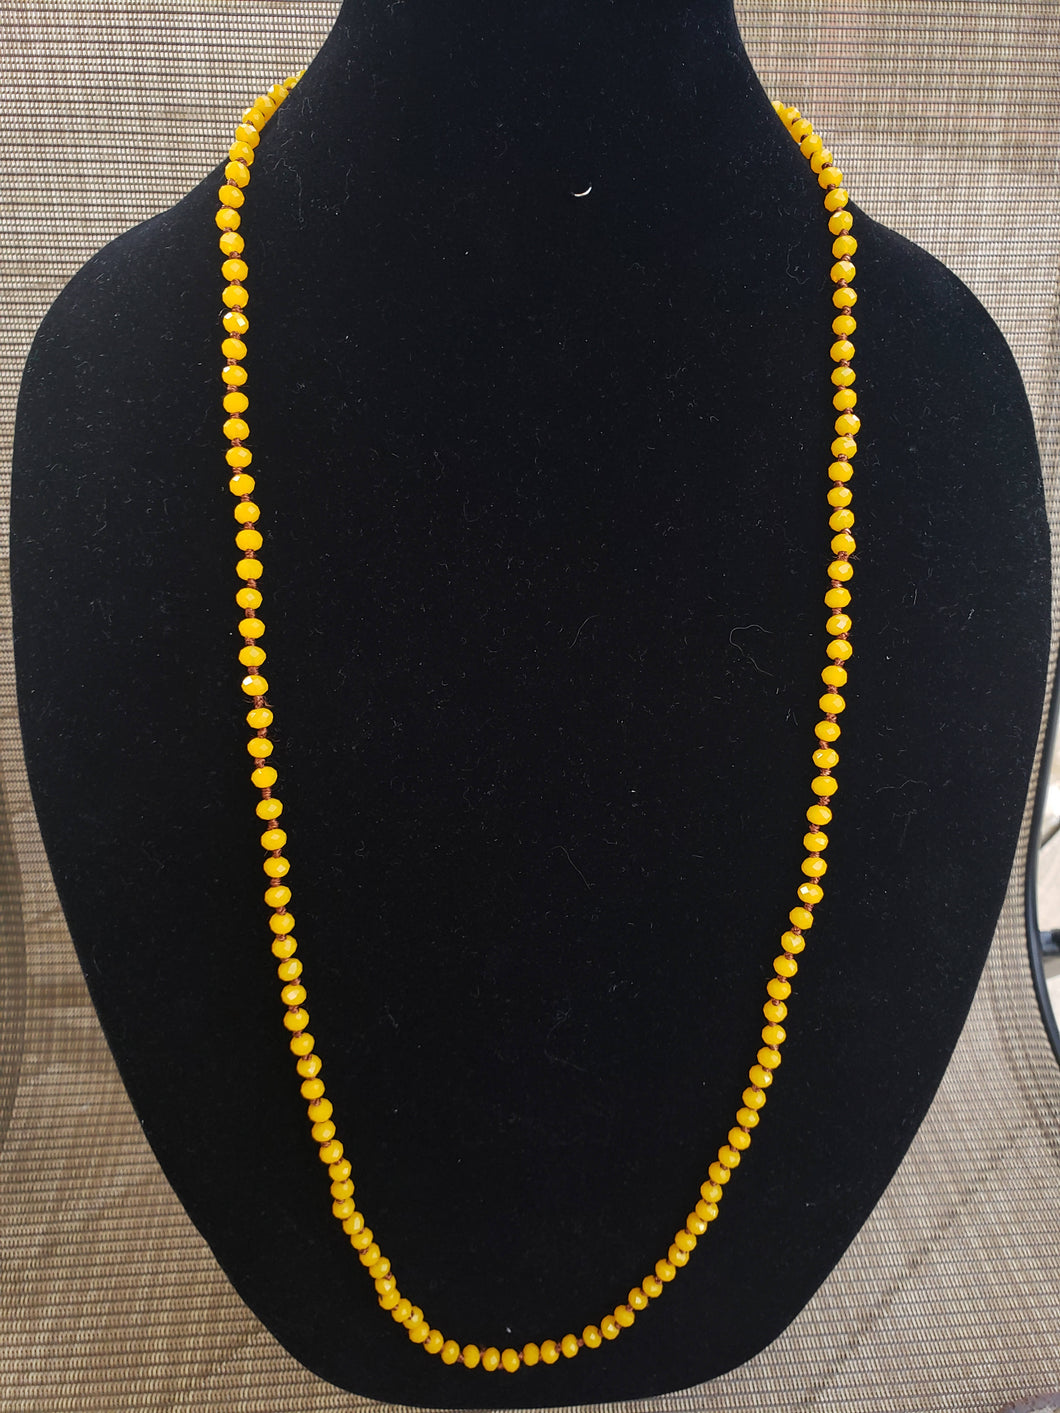 Yellow Knotted Necklace-N6-36-0002